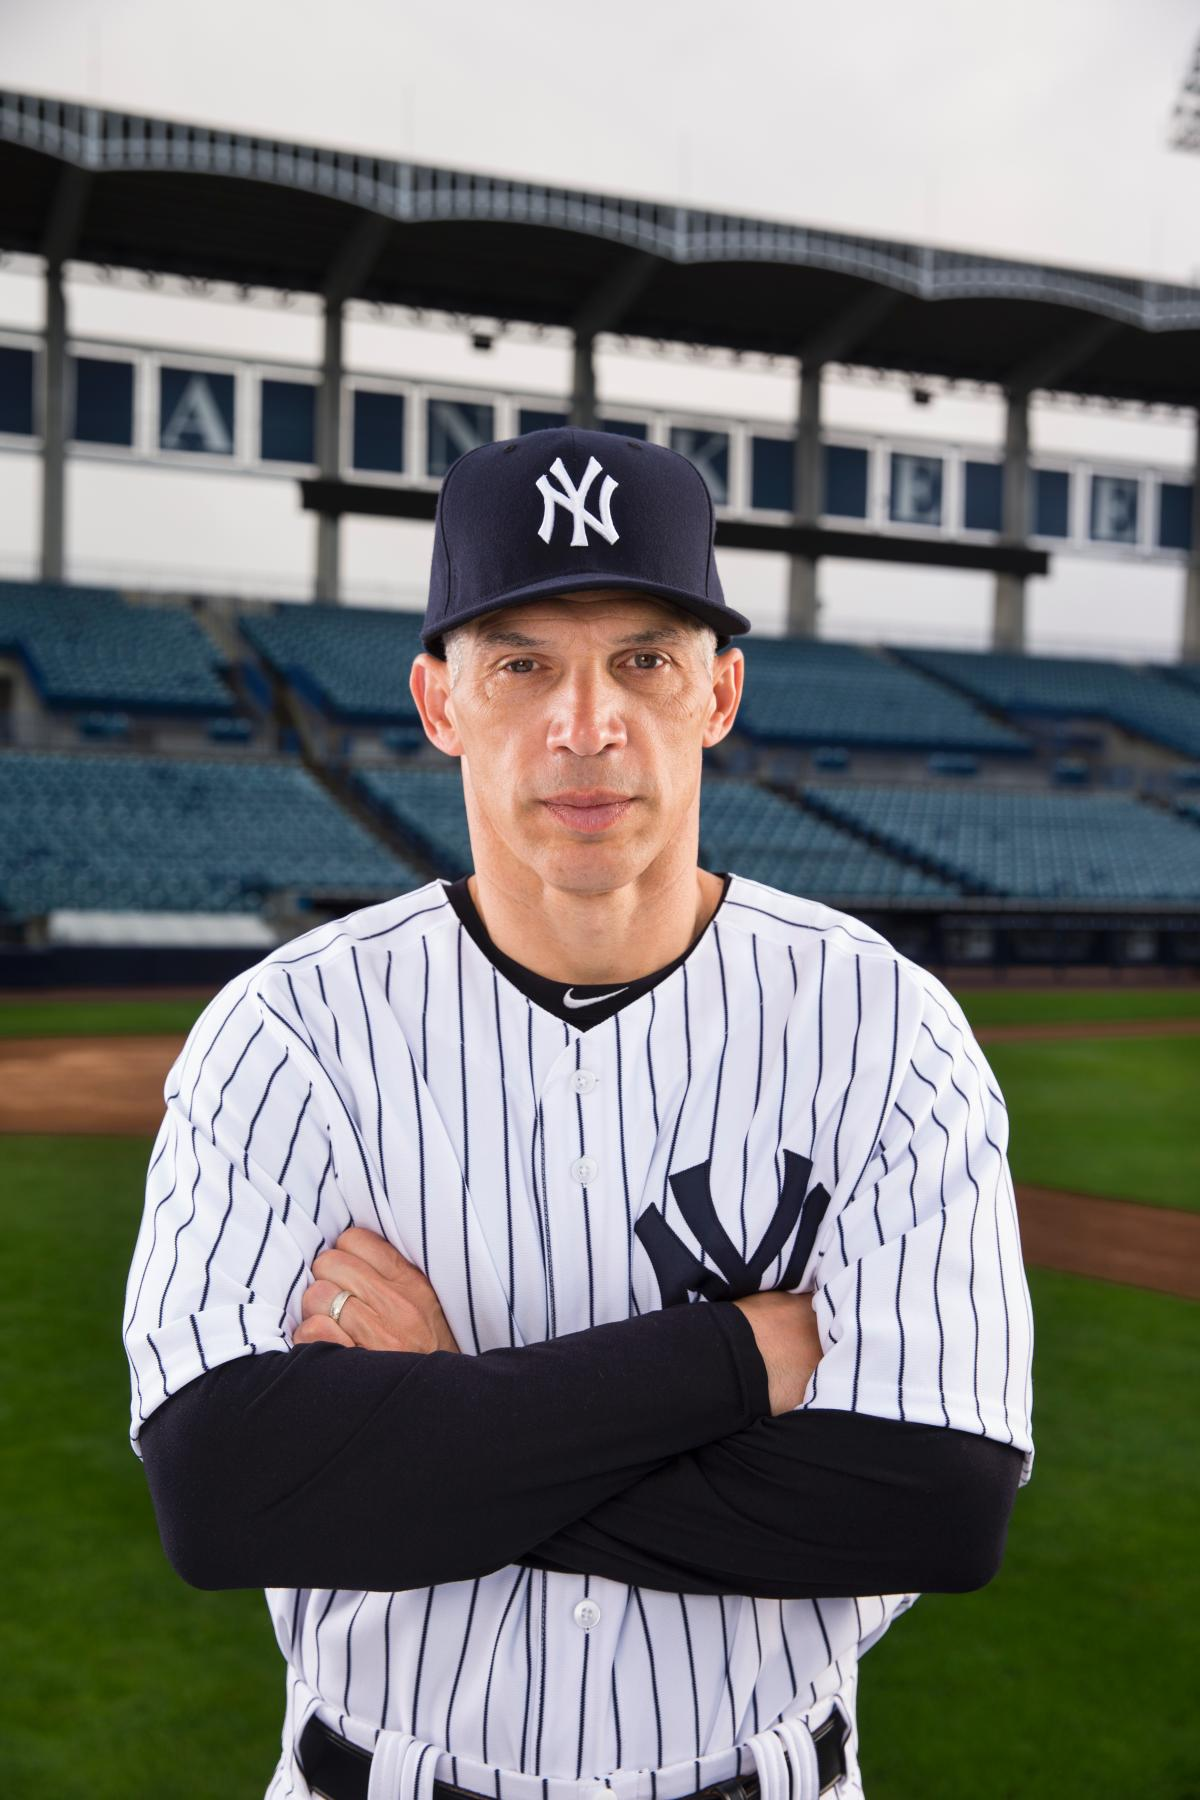 Joe%20Girardi.jpg